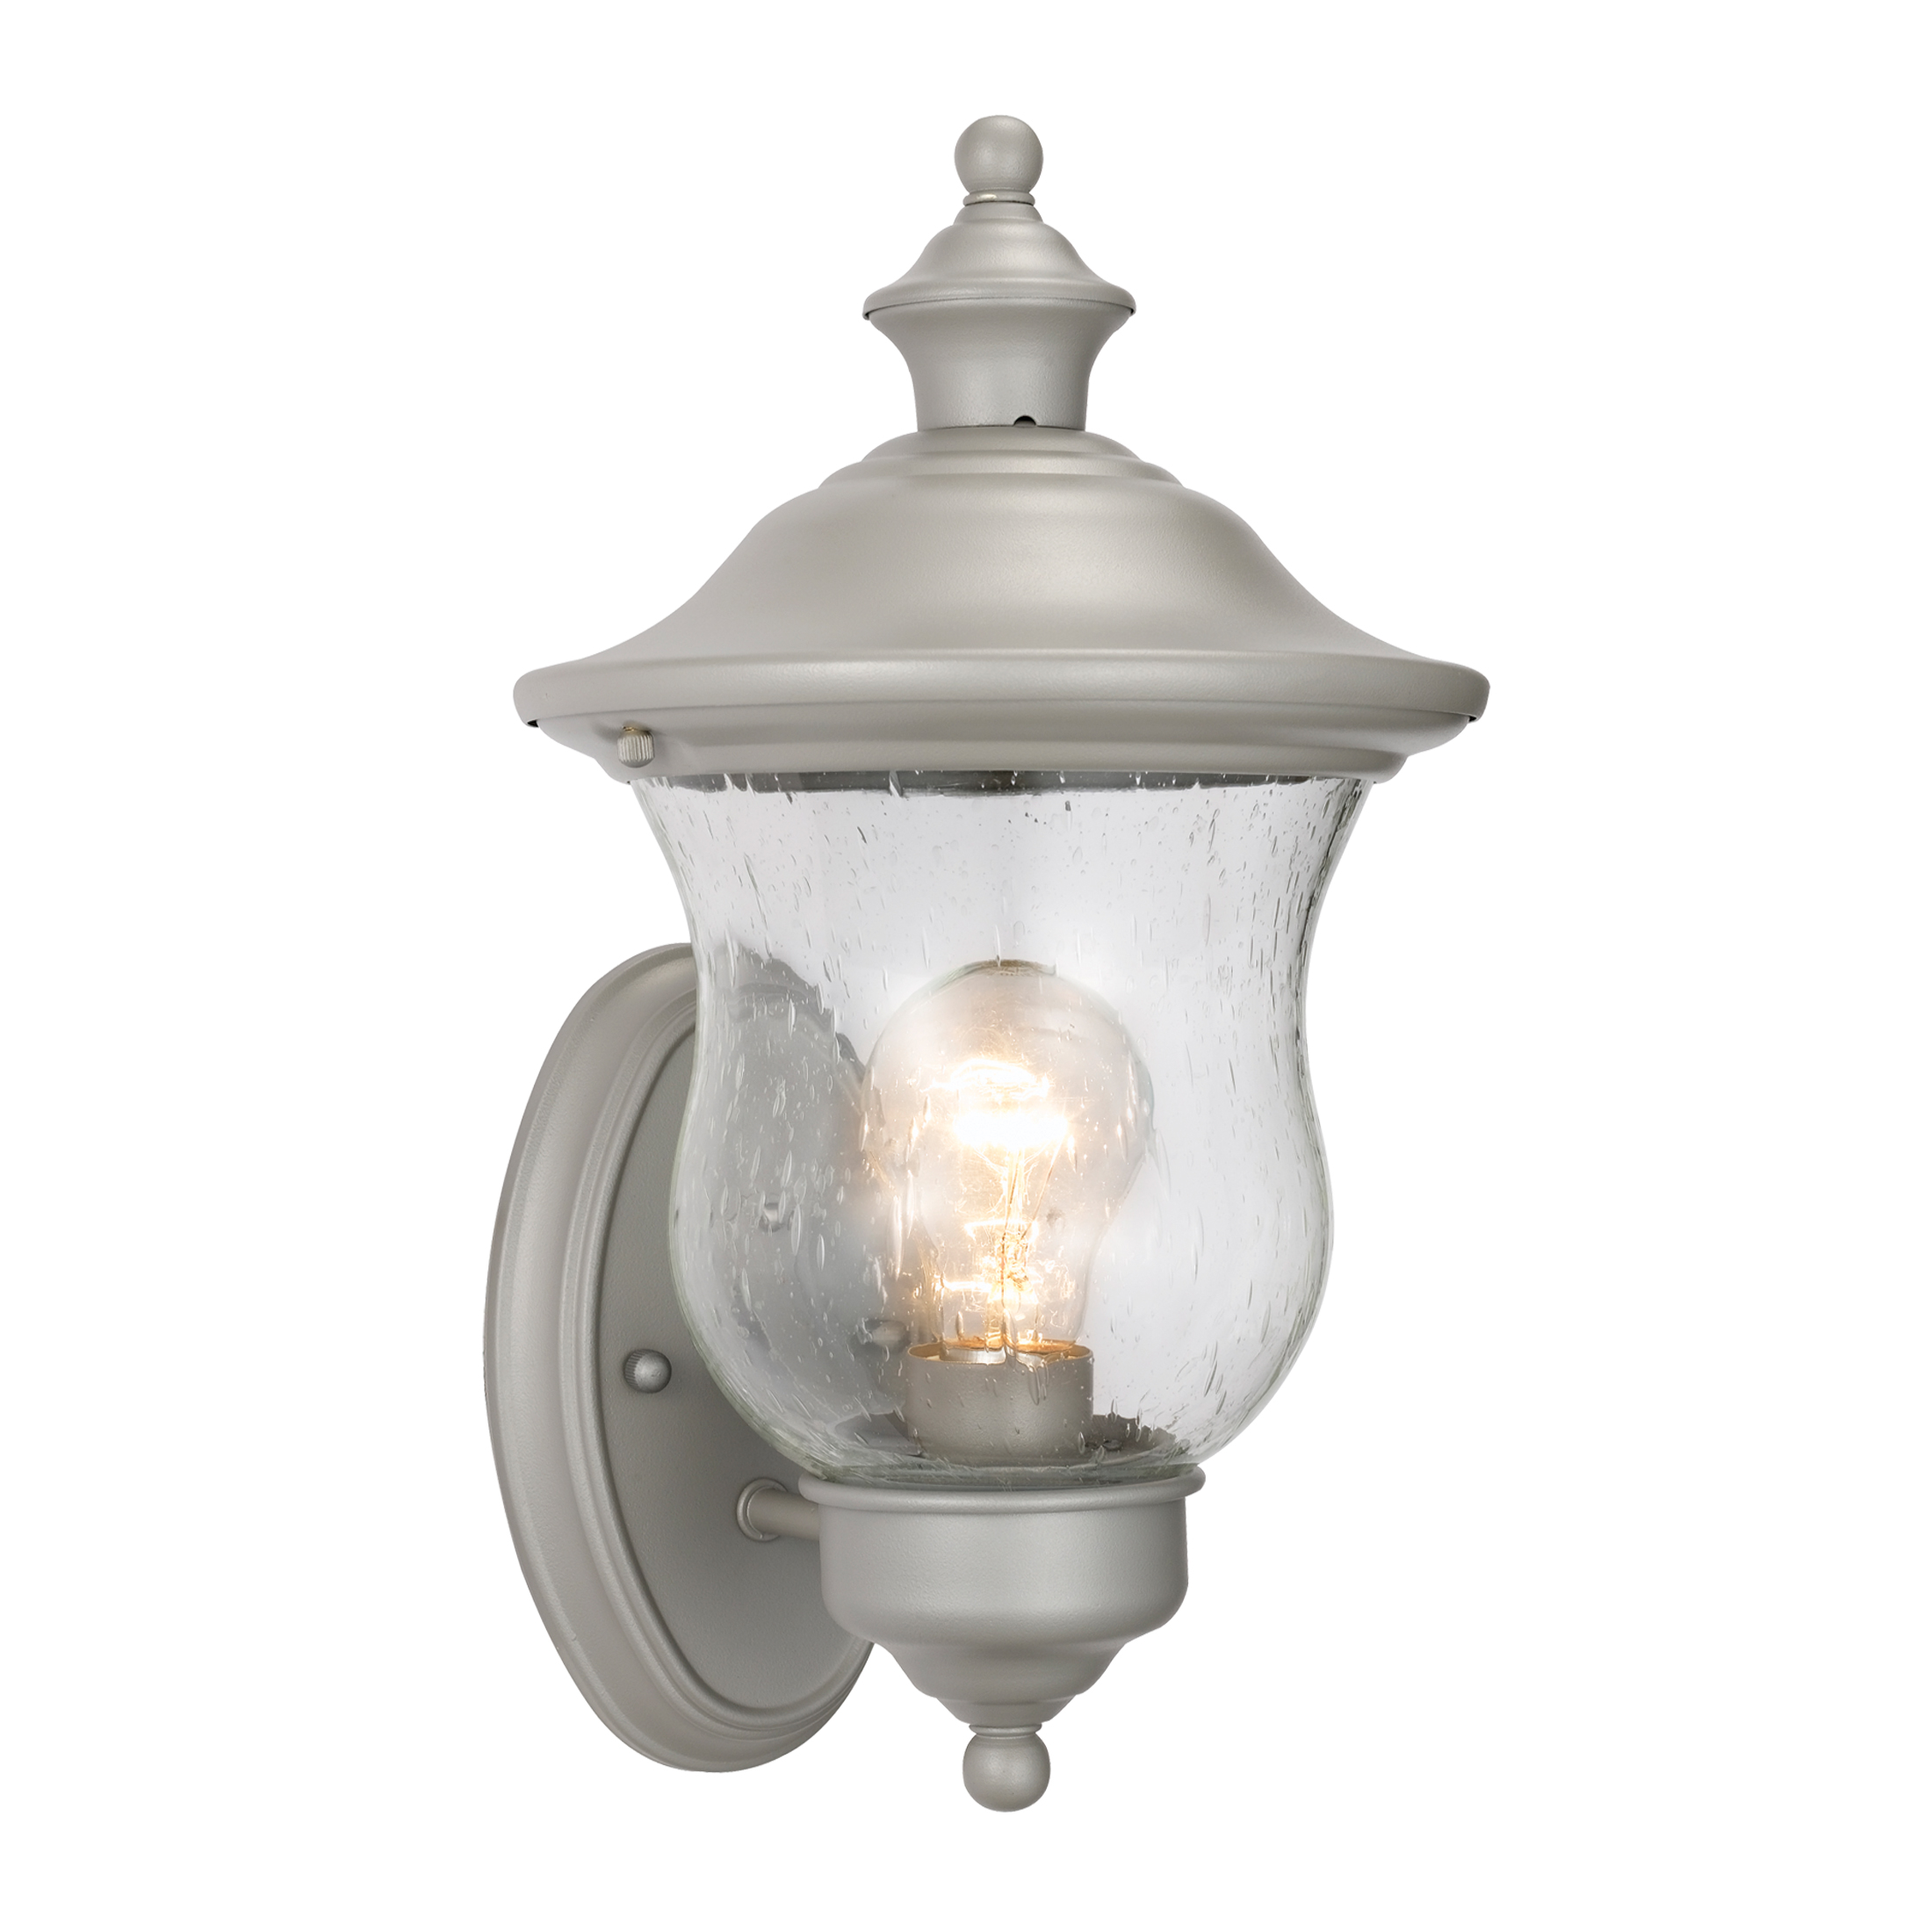 Highland Heritage Silver Up Light 508978 | Lighting | Design House